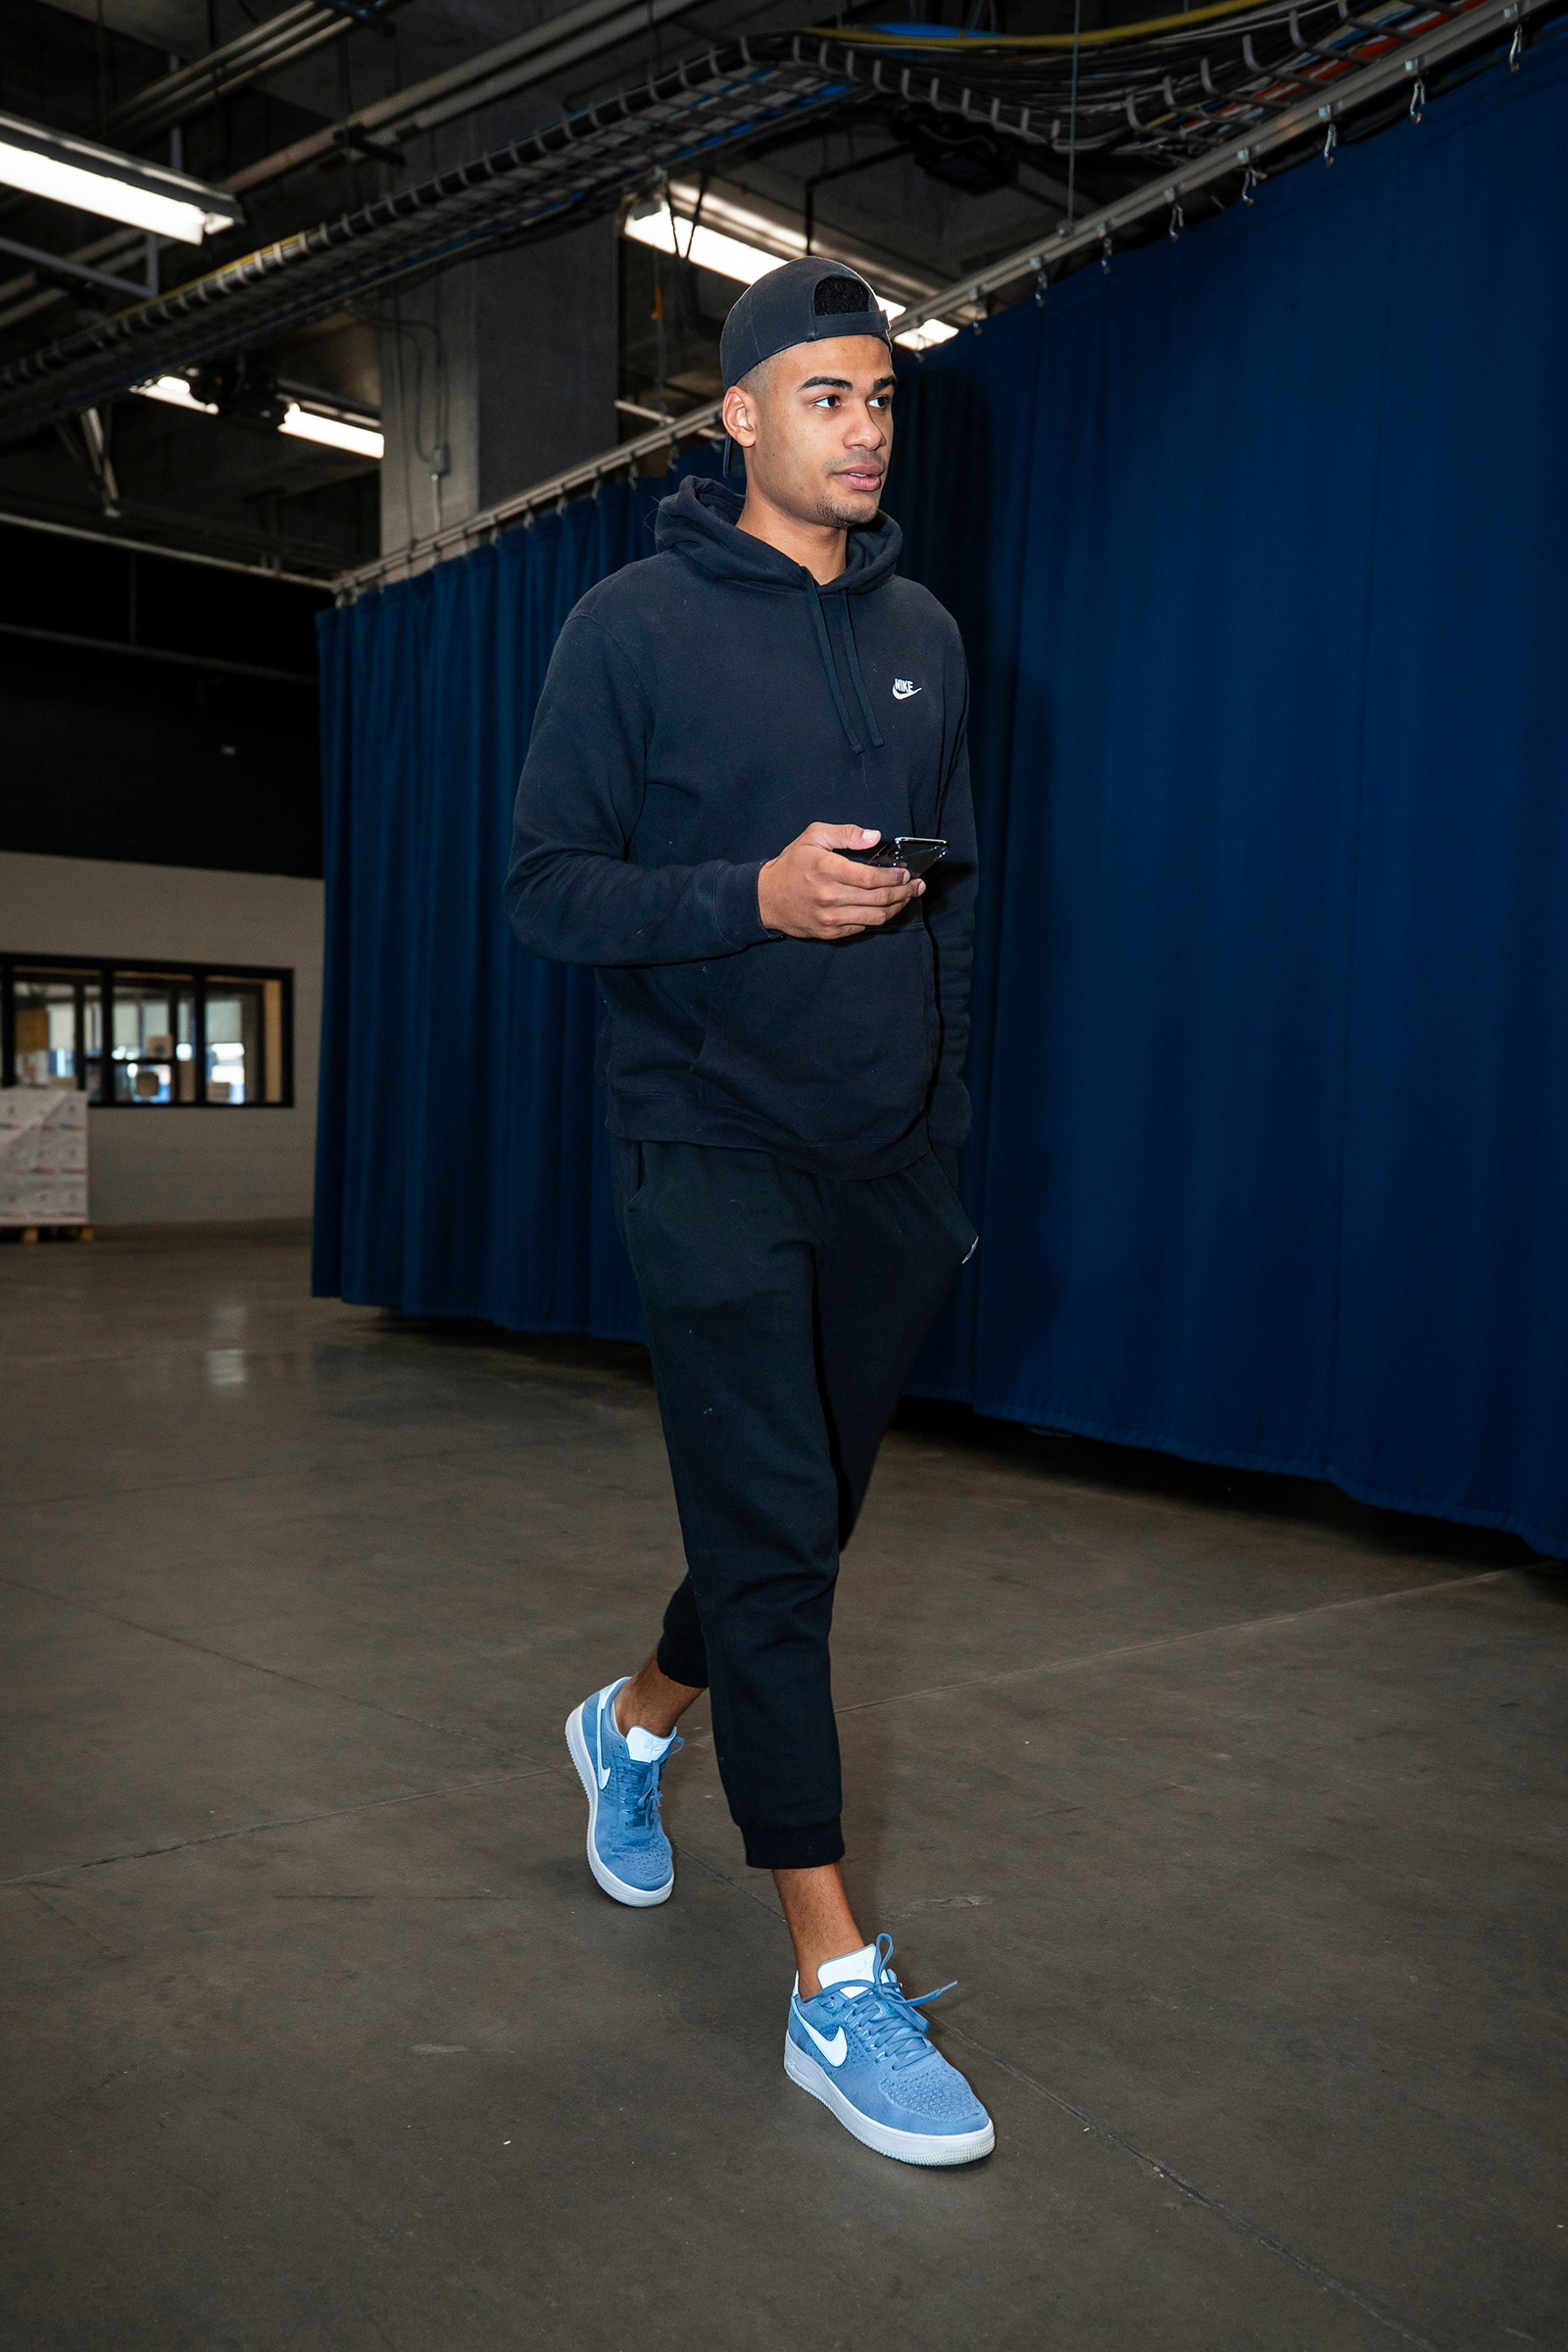 Timothe Luwawu-Cabarrot walking into an arena in street clothes